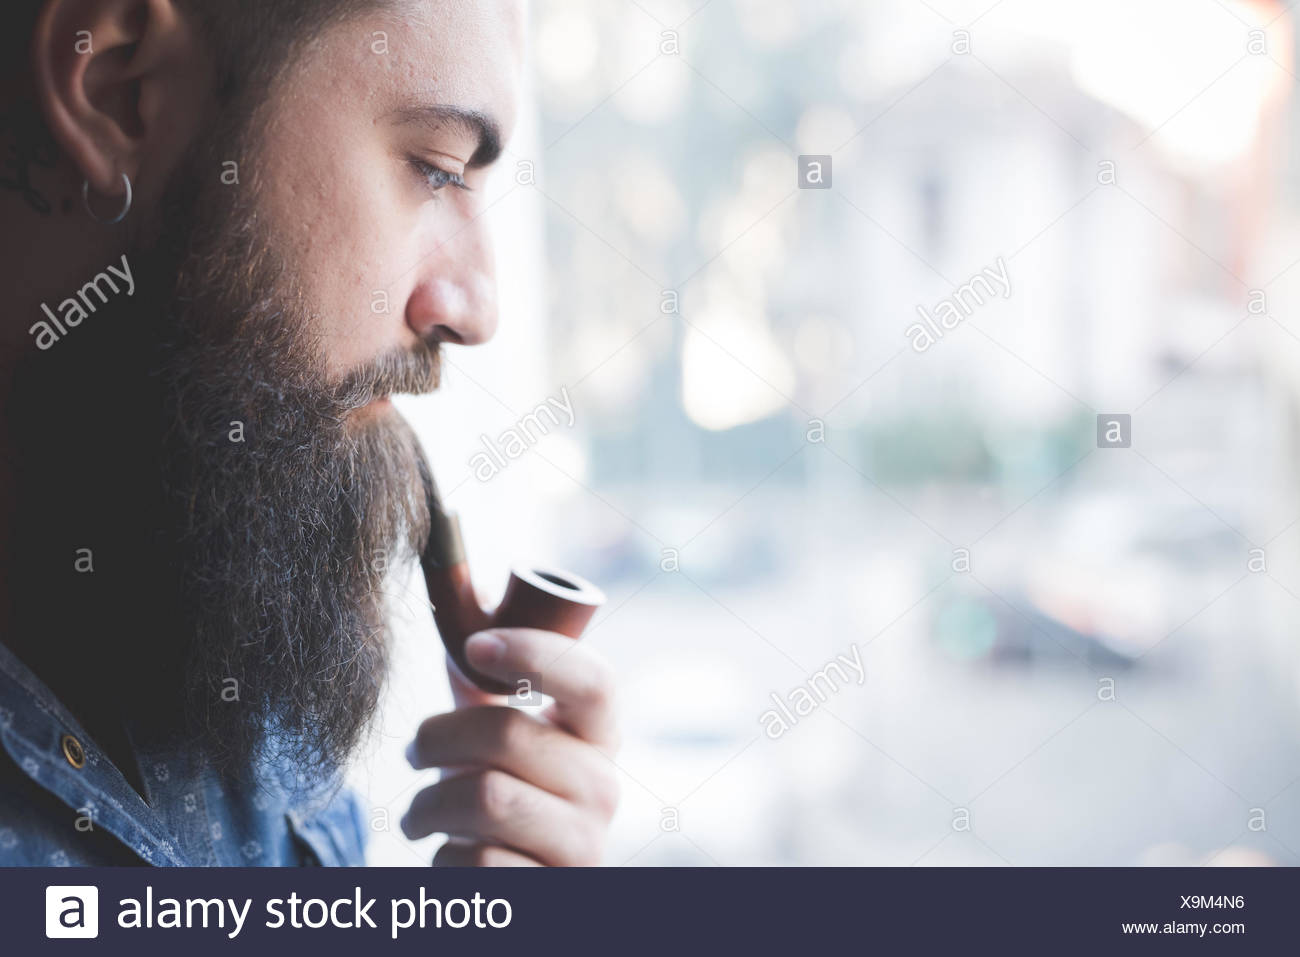 Young bearded man smoking pipe by window - Stock Image